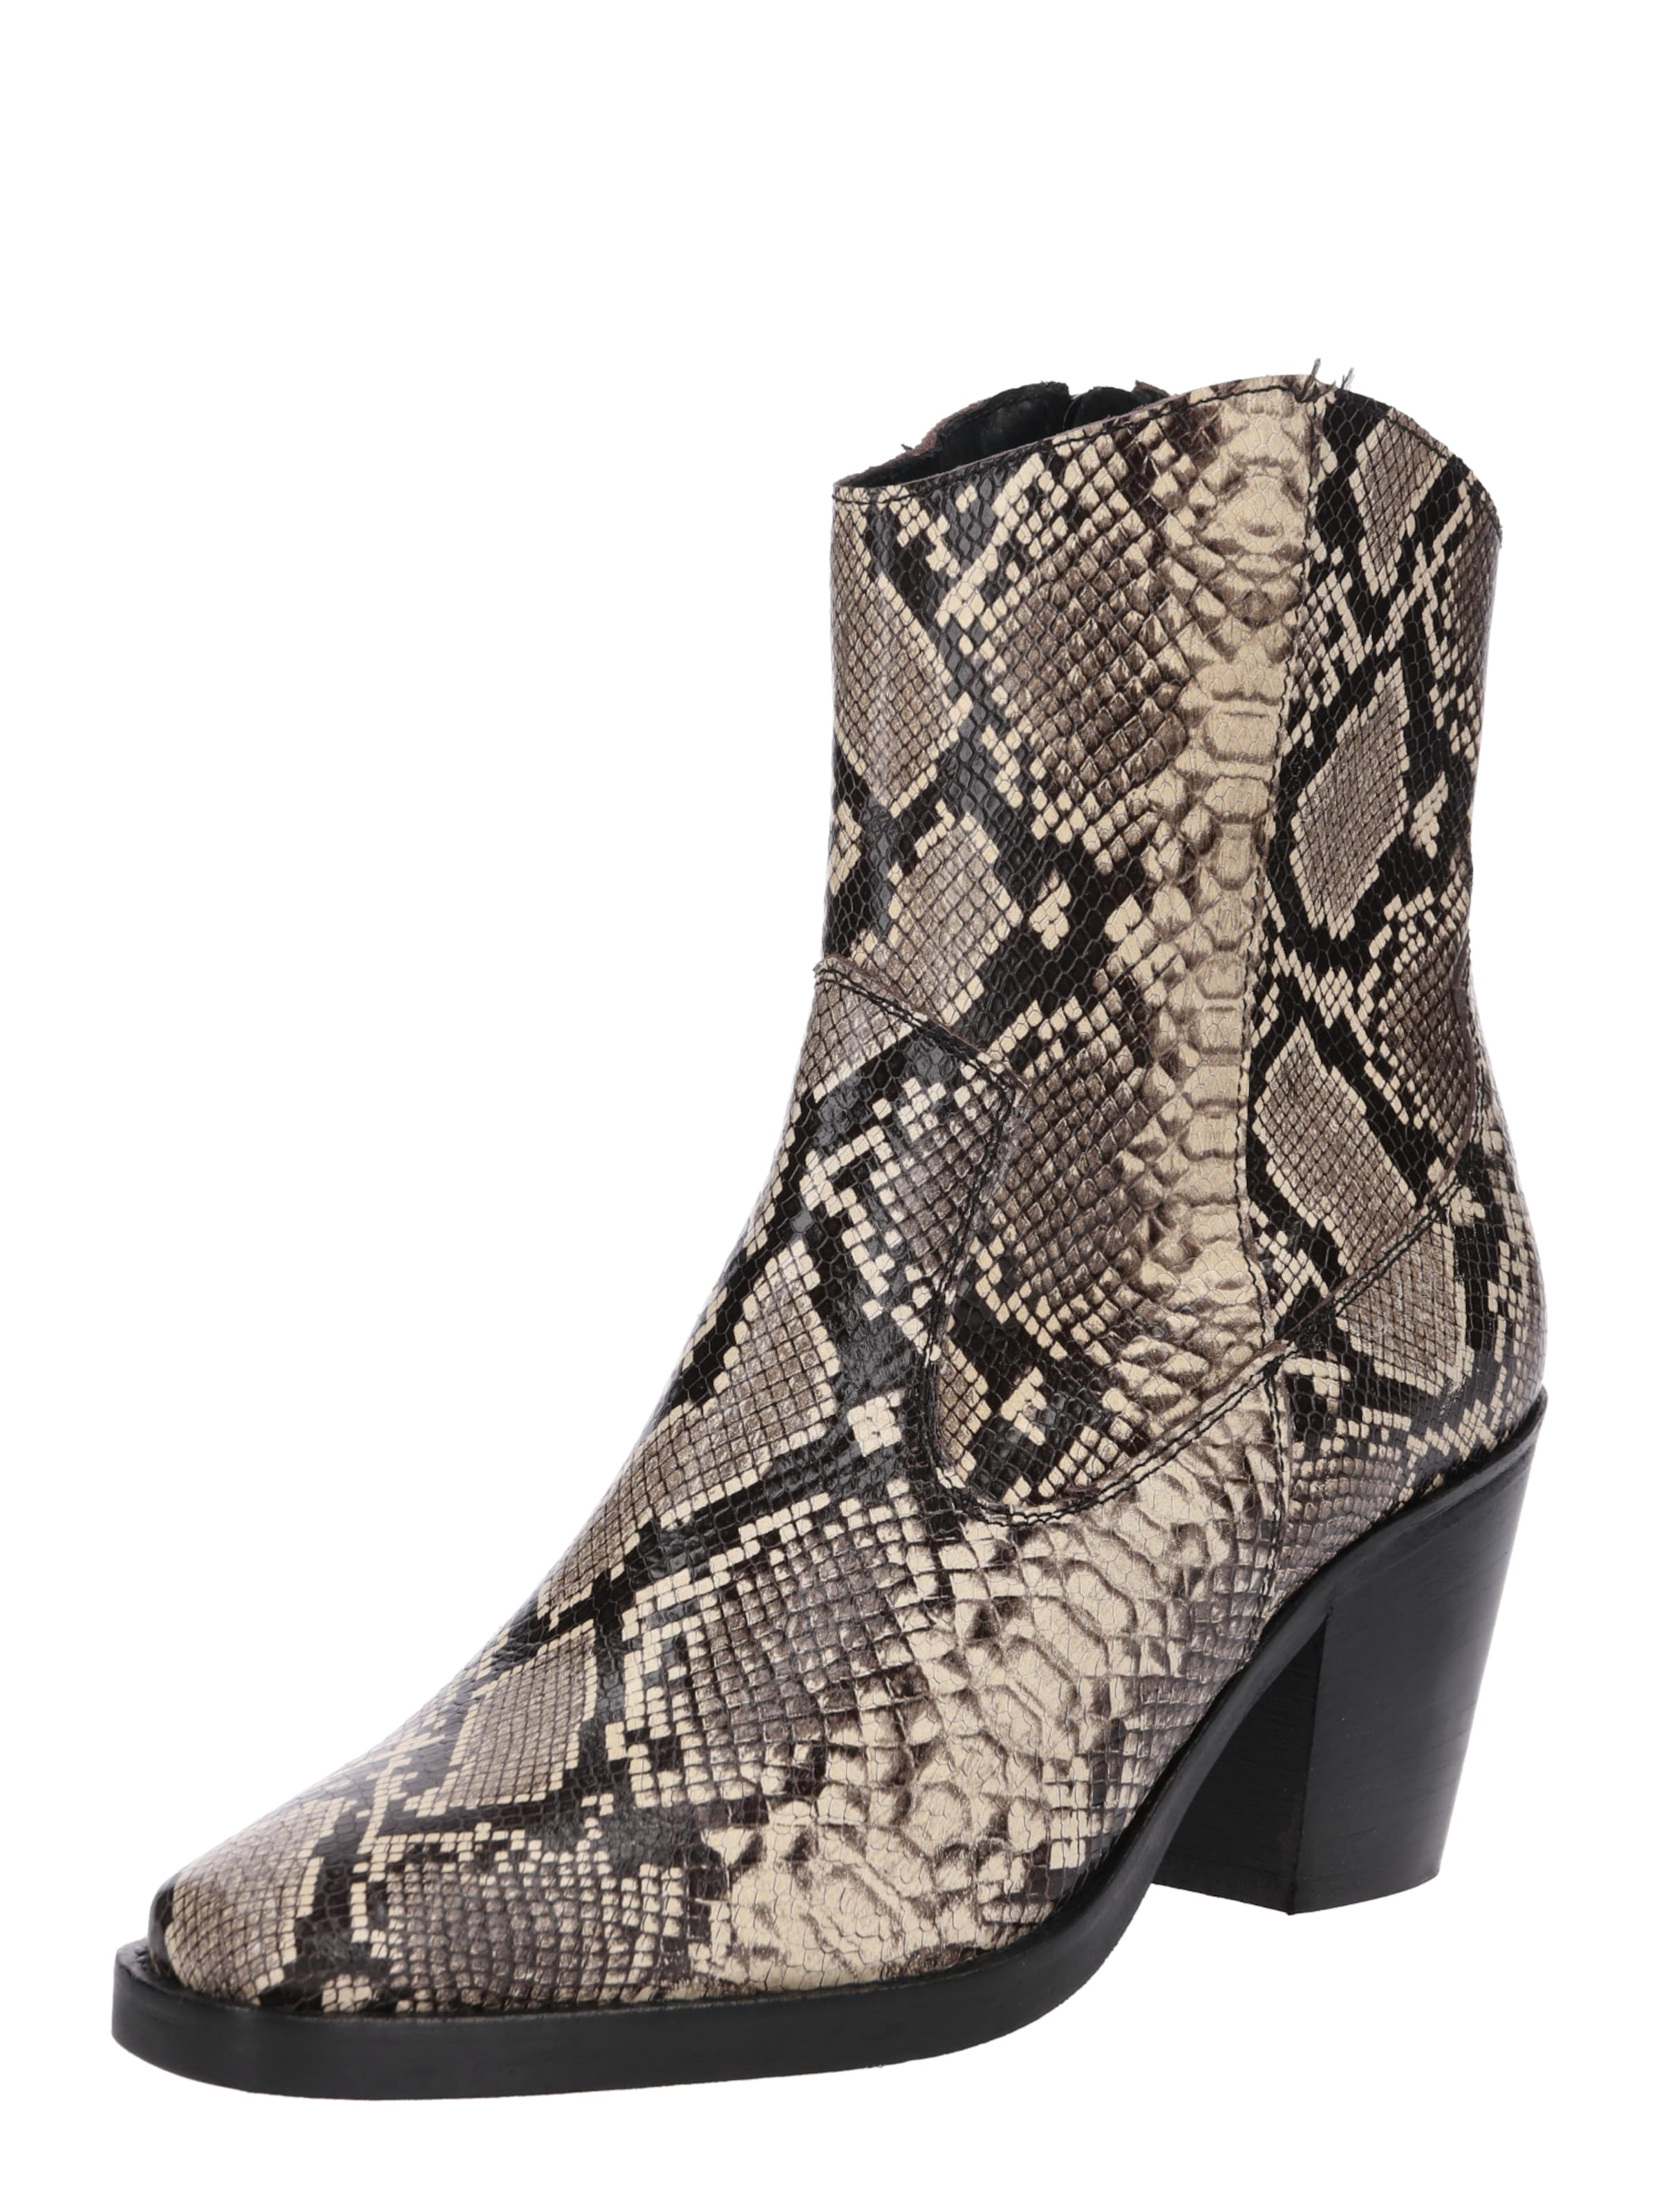 About 'chayenne' Stiefelette In You Taupe PZiOkXu